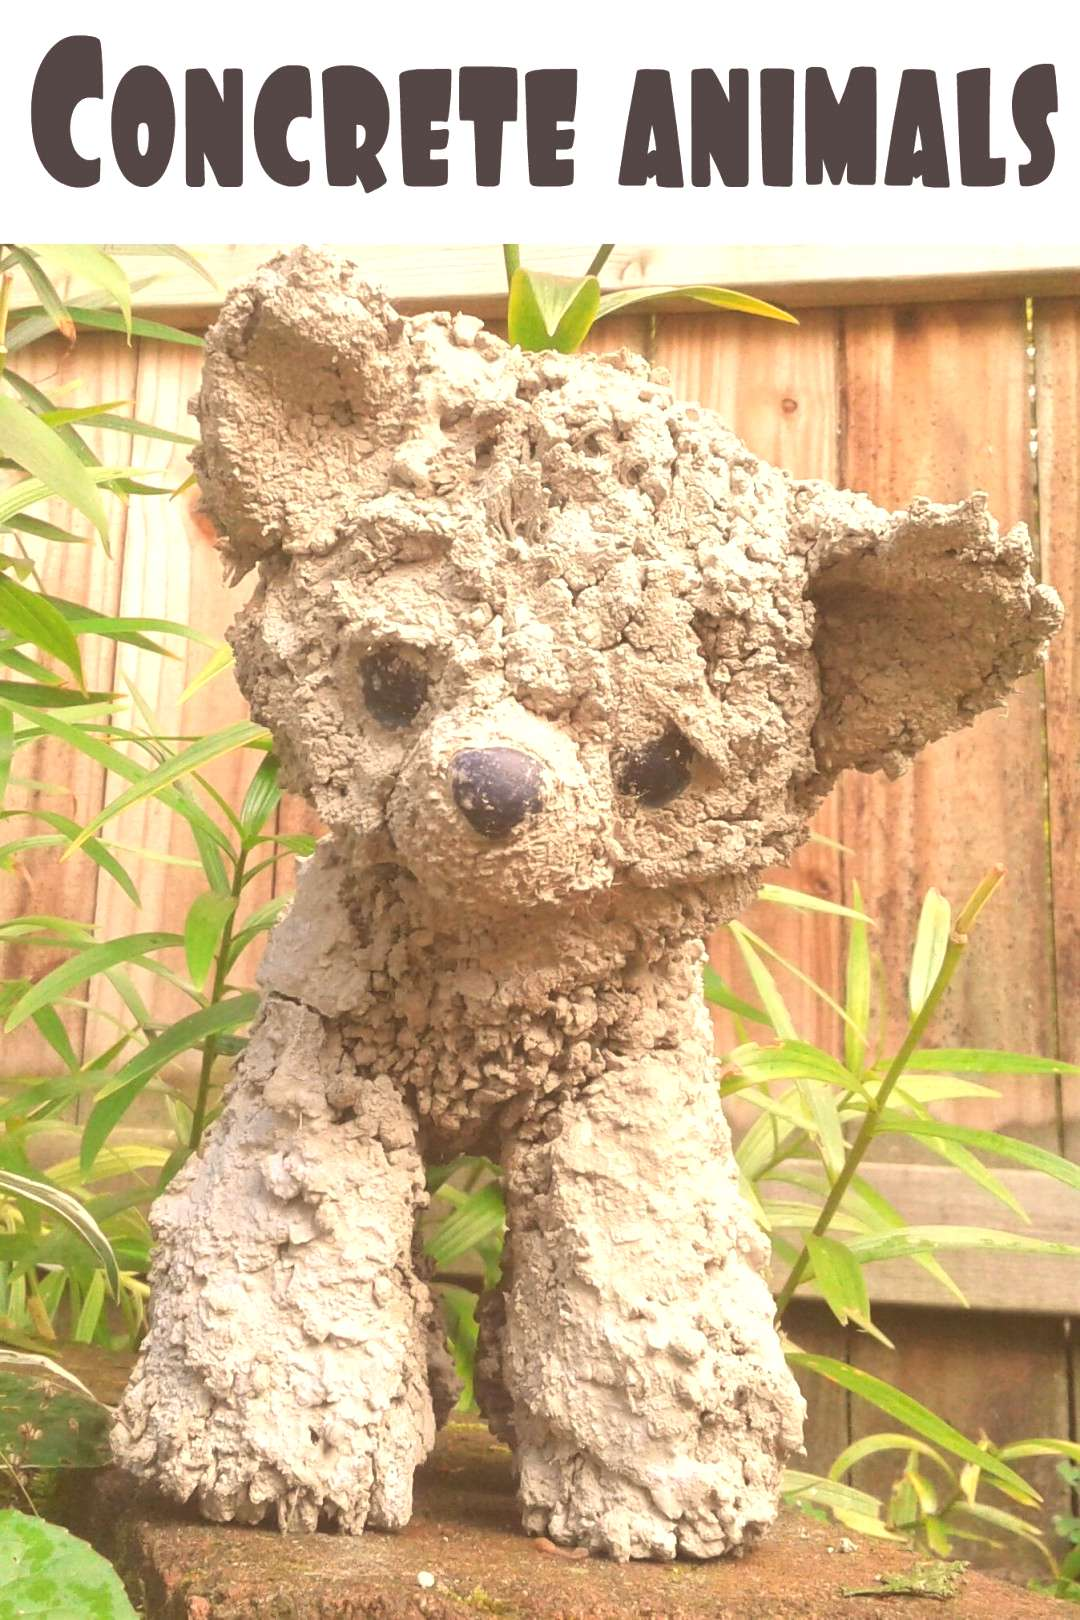 How to make concrete animals for your garden How to make concrete animals for your garden.